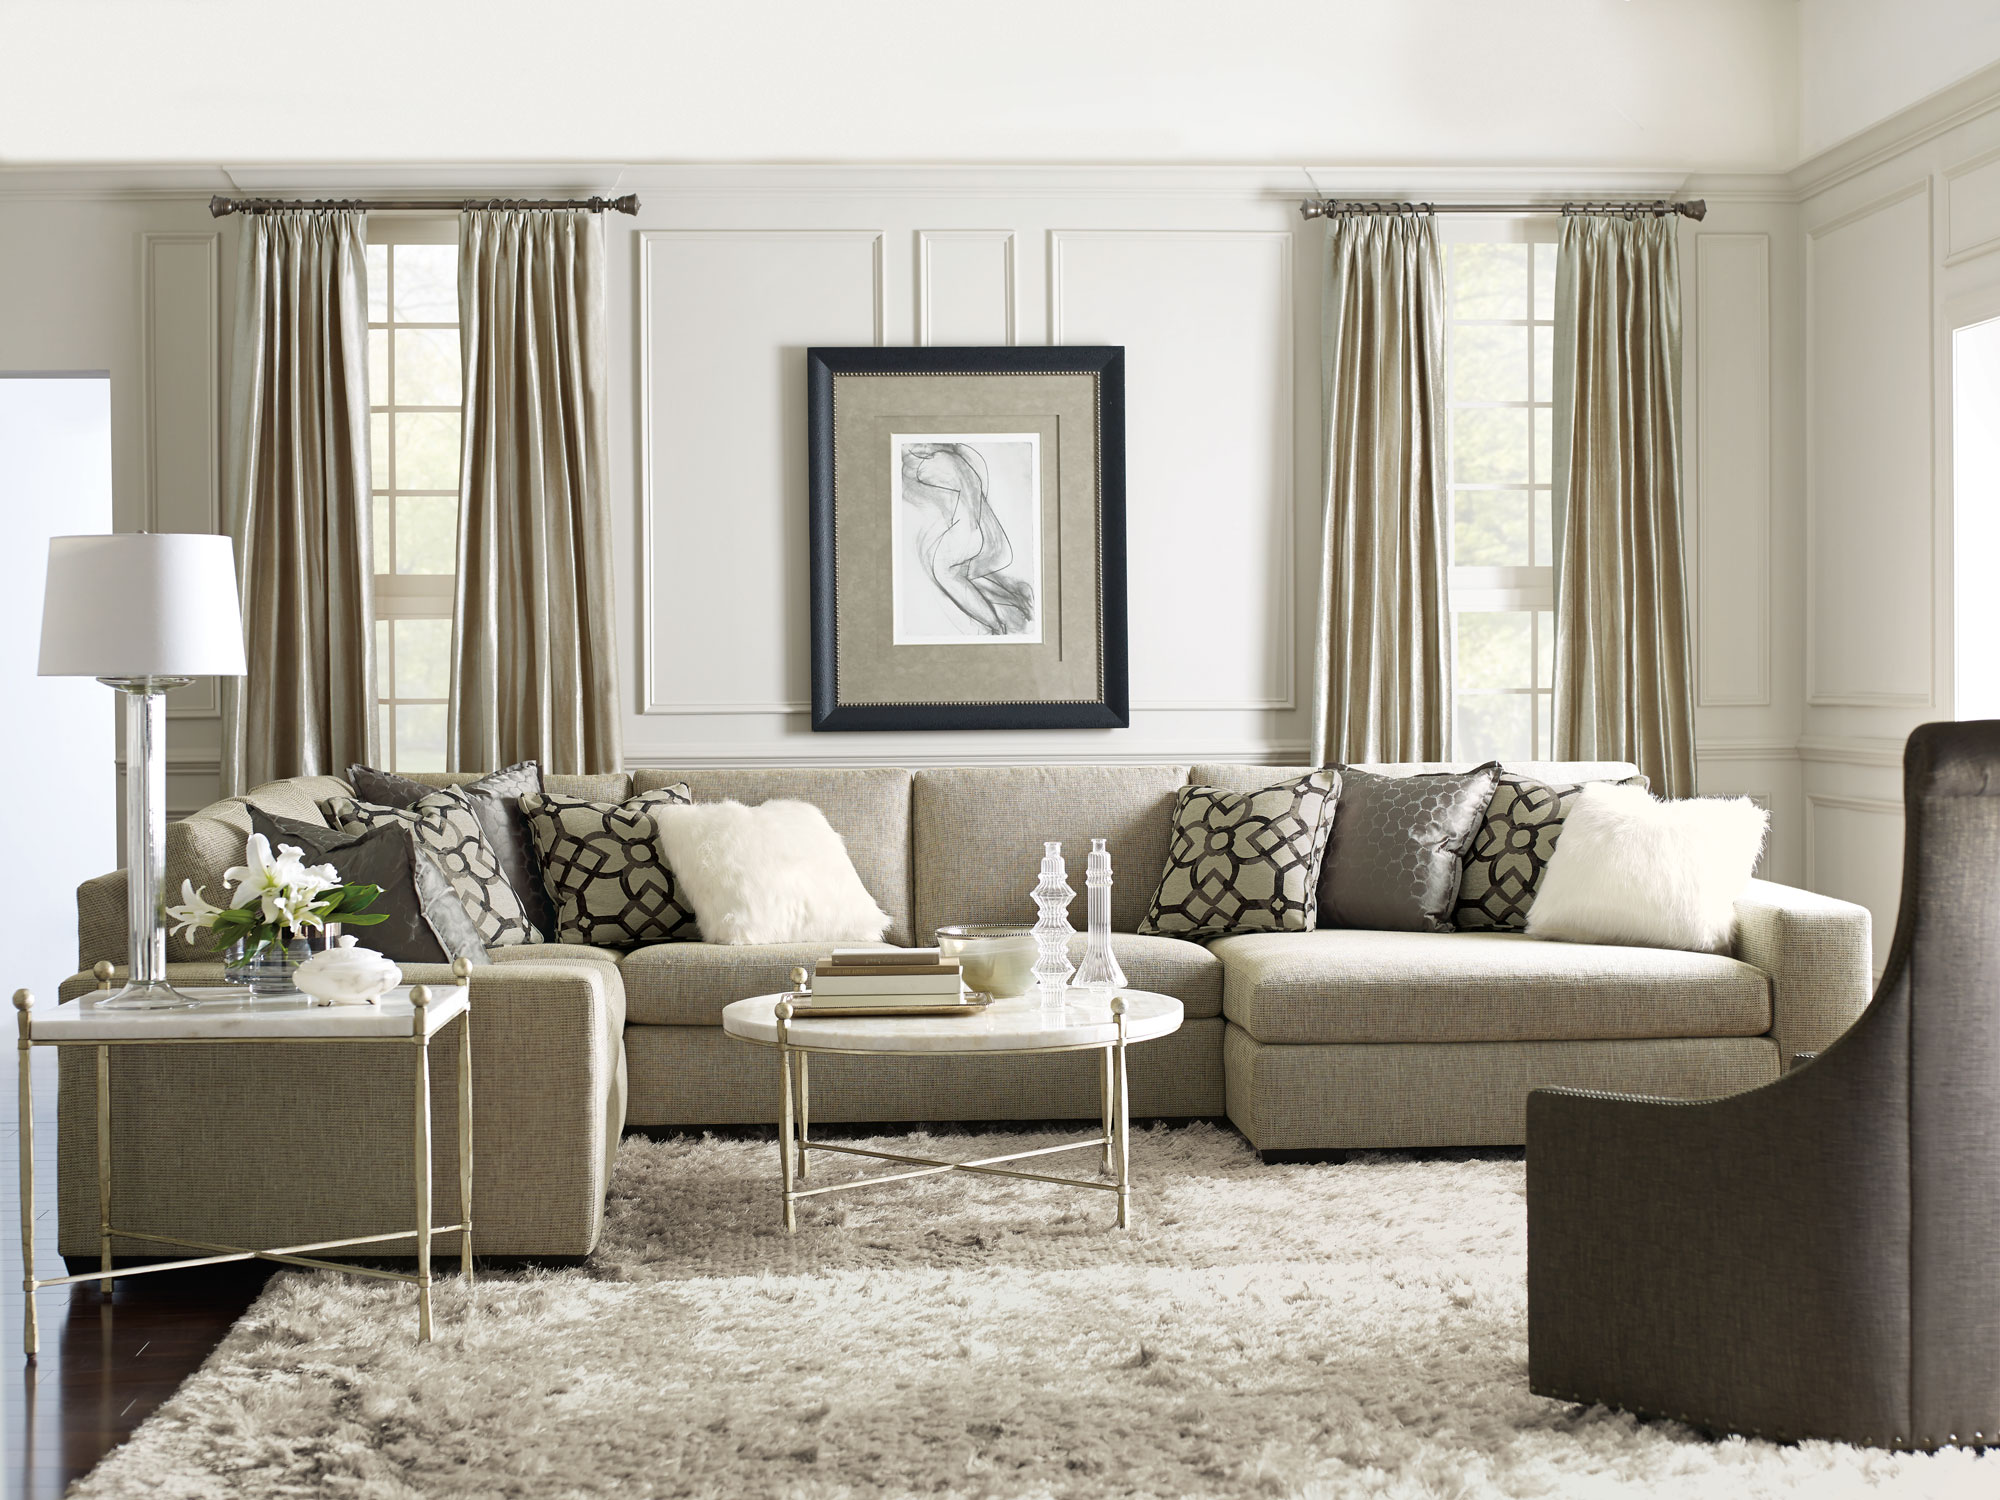 Maurice orlando clarion living room bernhardt Bernhardt living room furniture